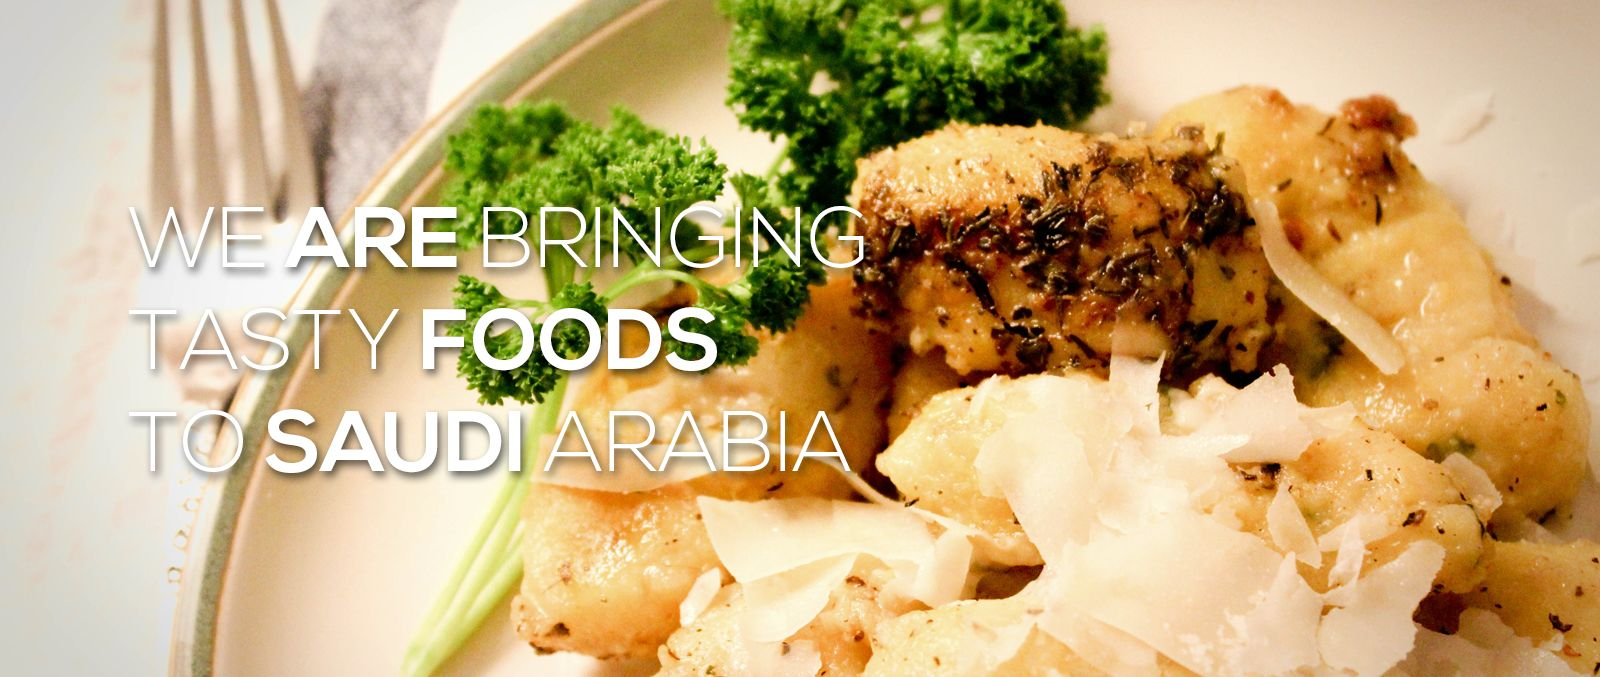 Al Rasheed Trading Est  - One of the leading importer Oriental foods